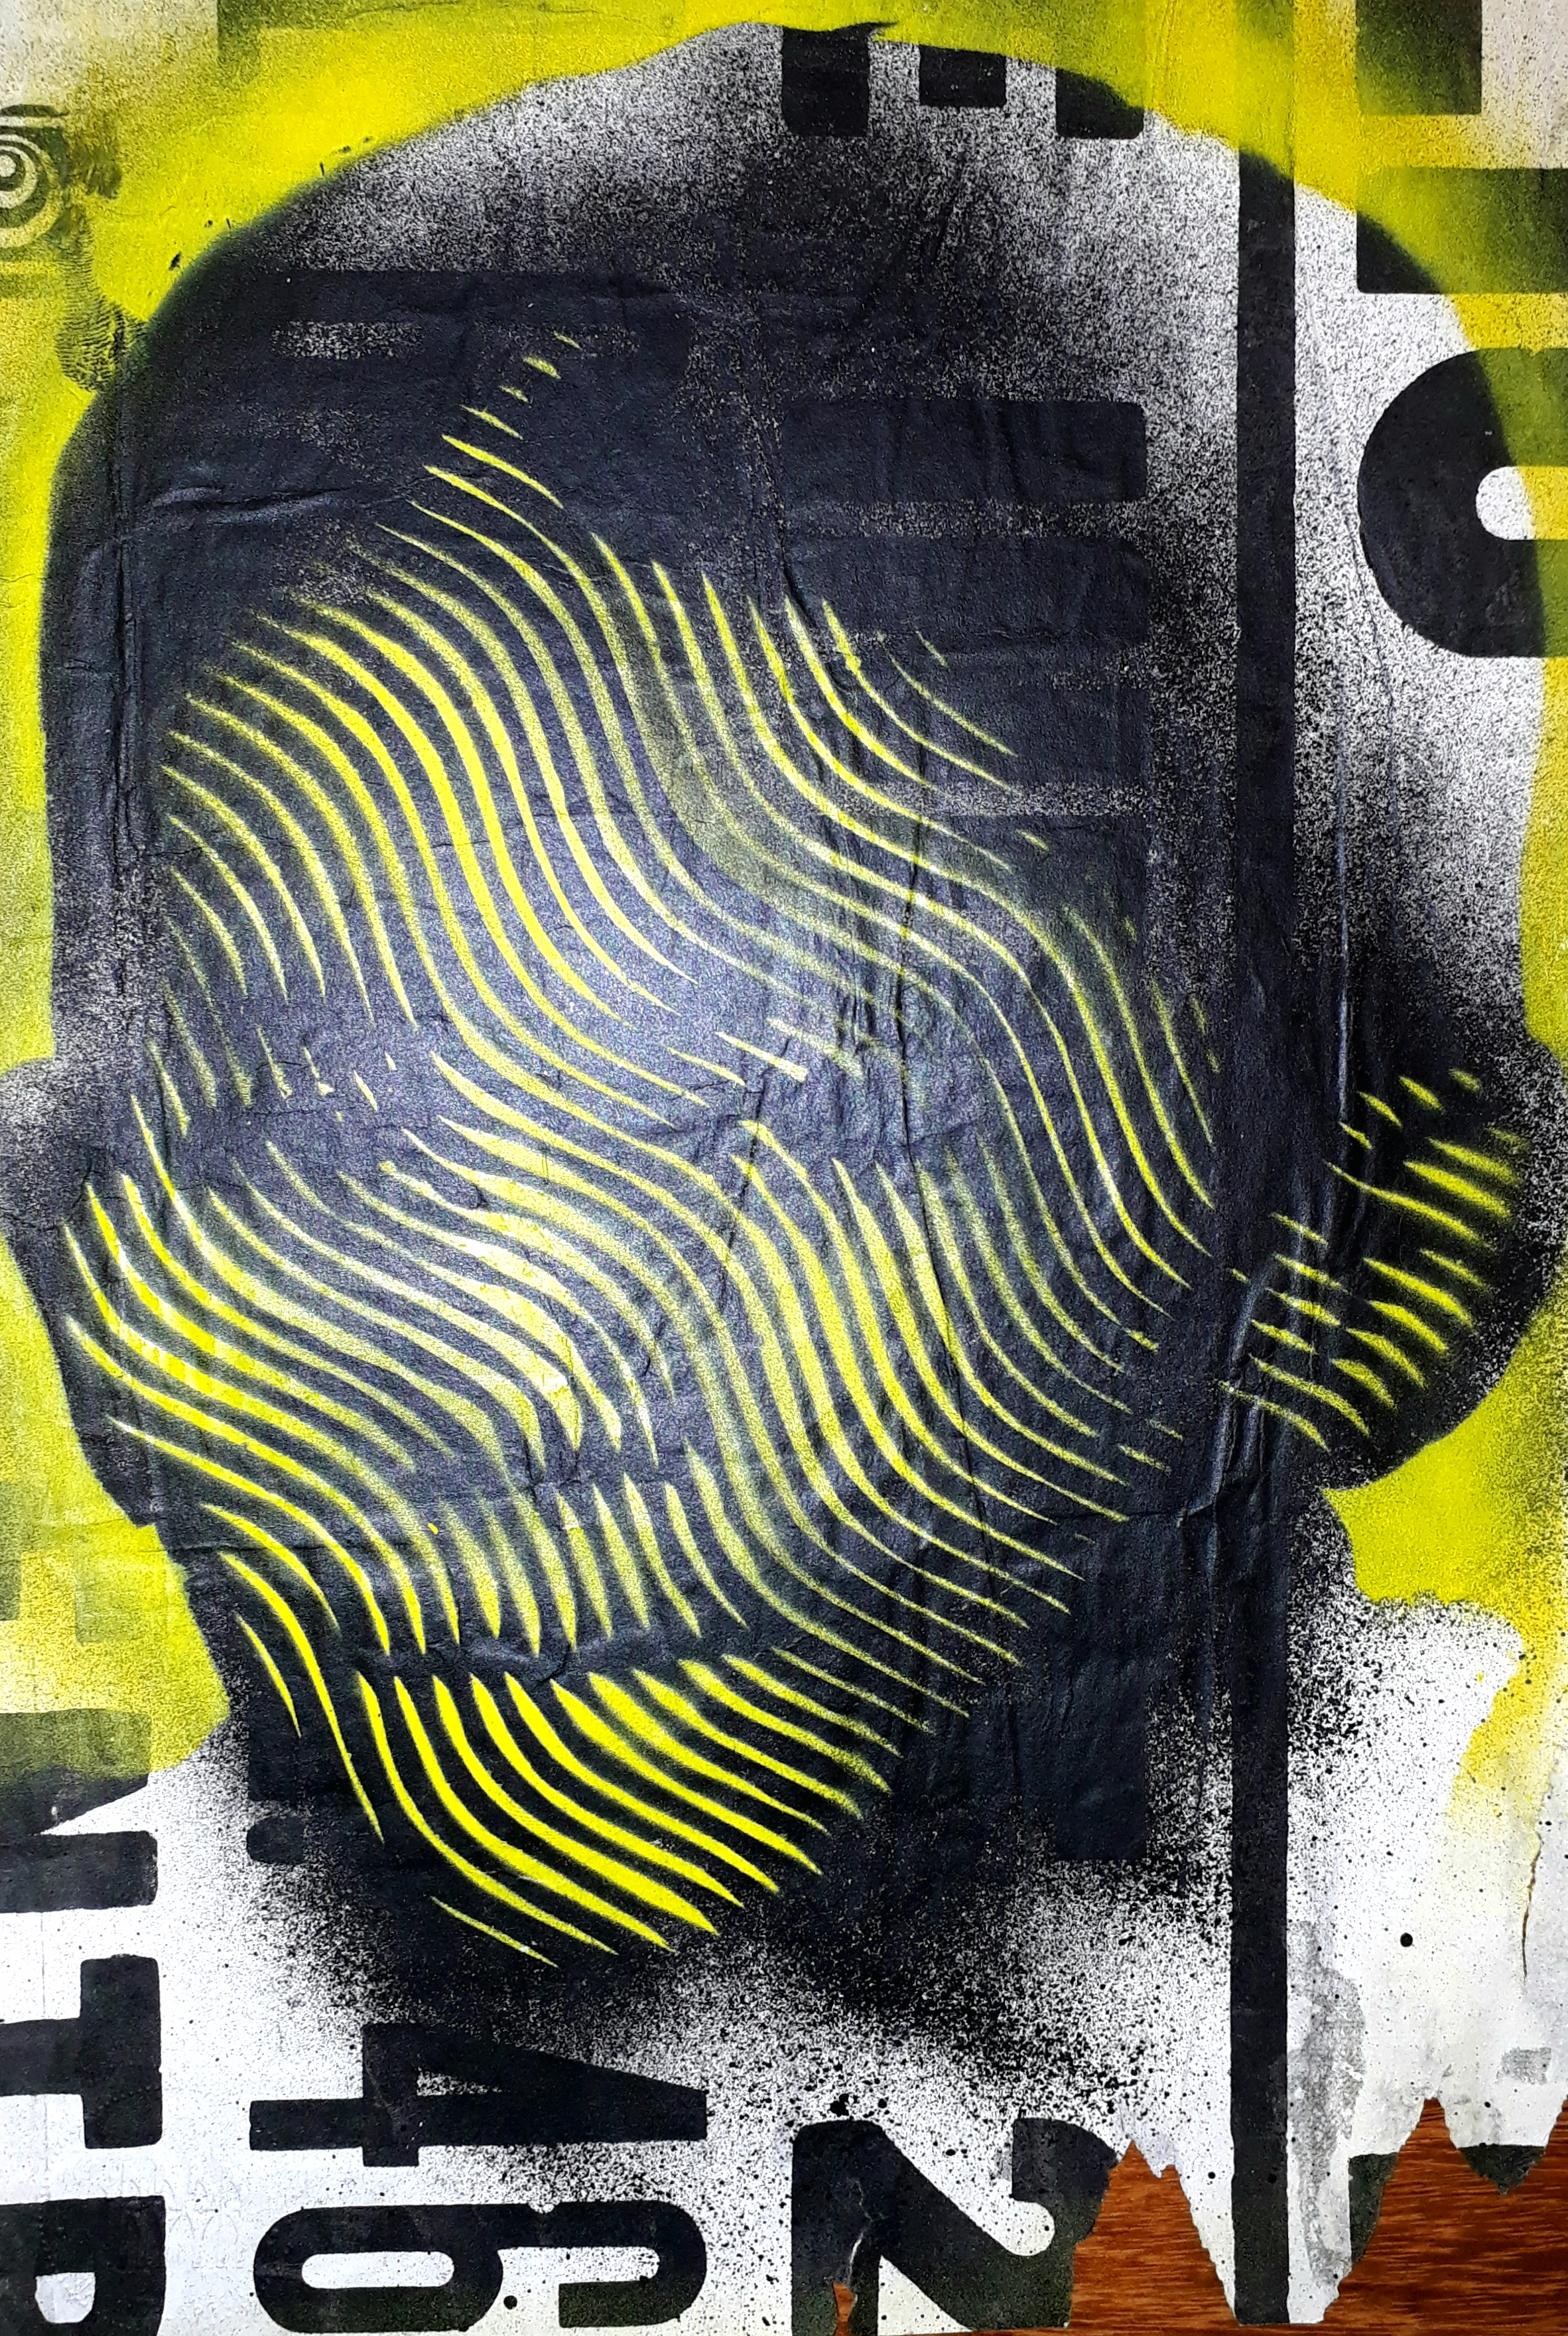 S.T (2018) - 34.5 x 24.5 cm - Stencil y pintura en aerosol sobre Cartel / Stencil and spray paint on found poster